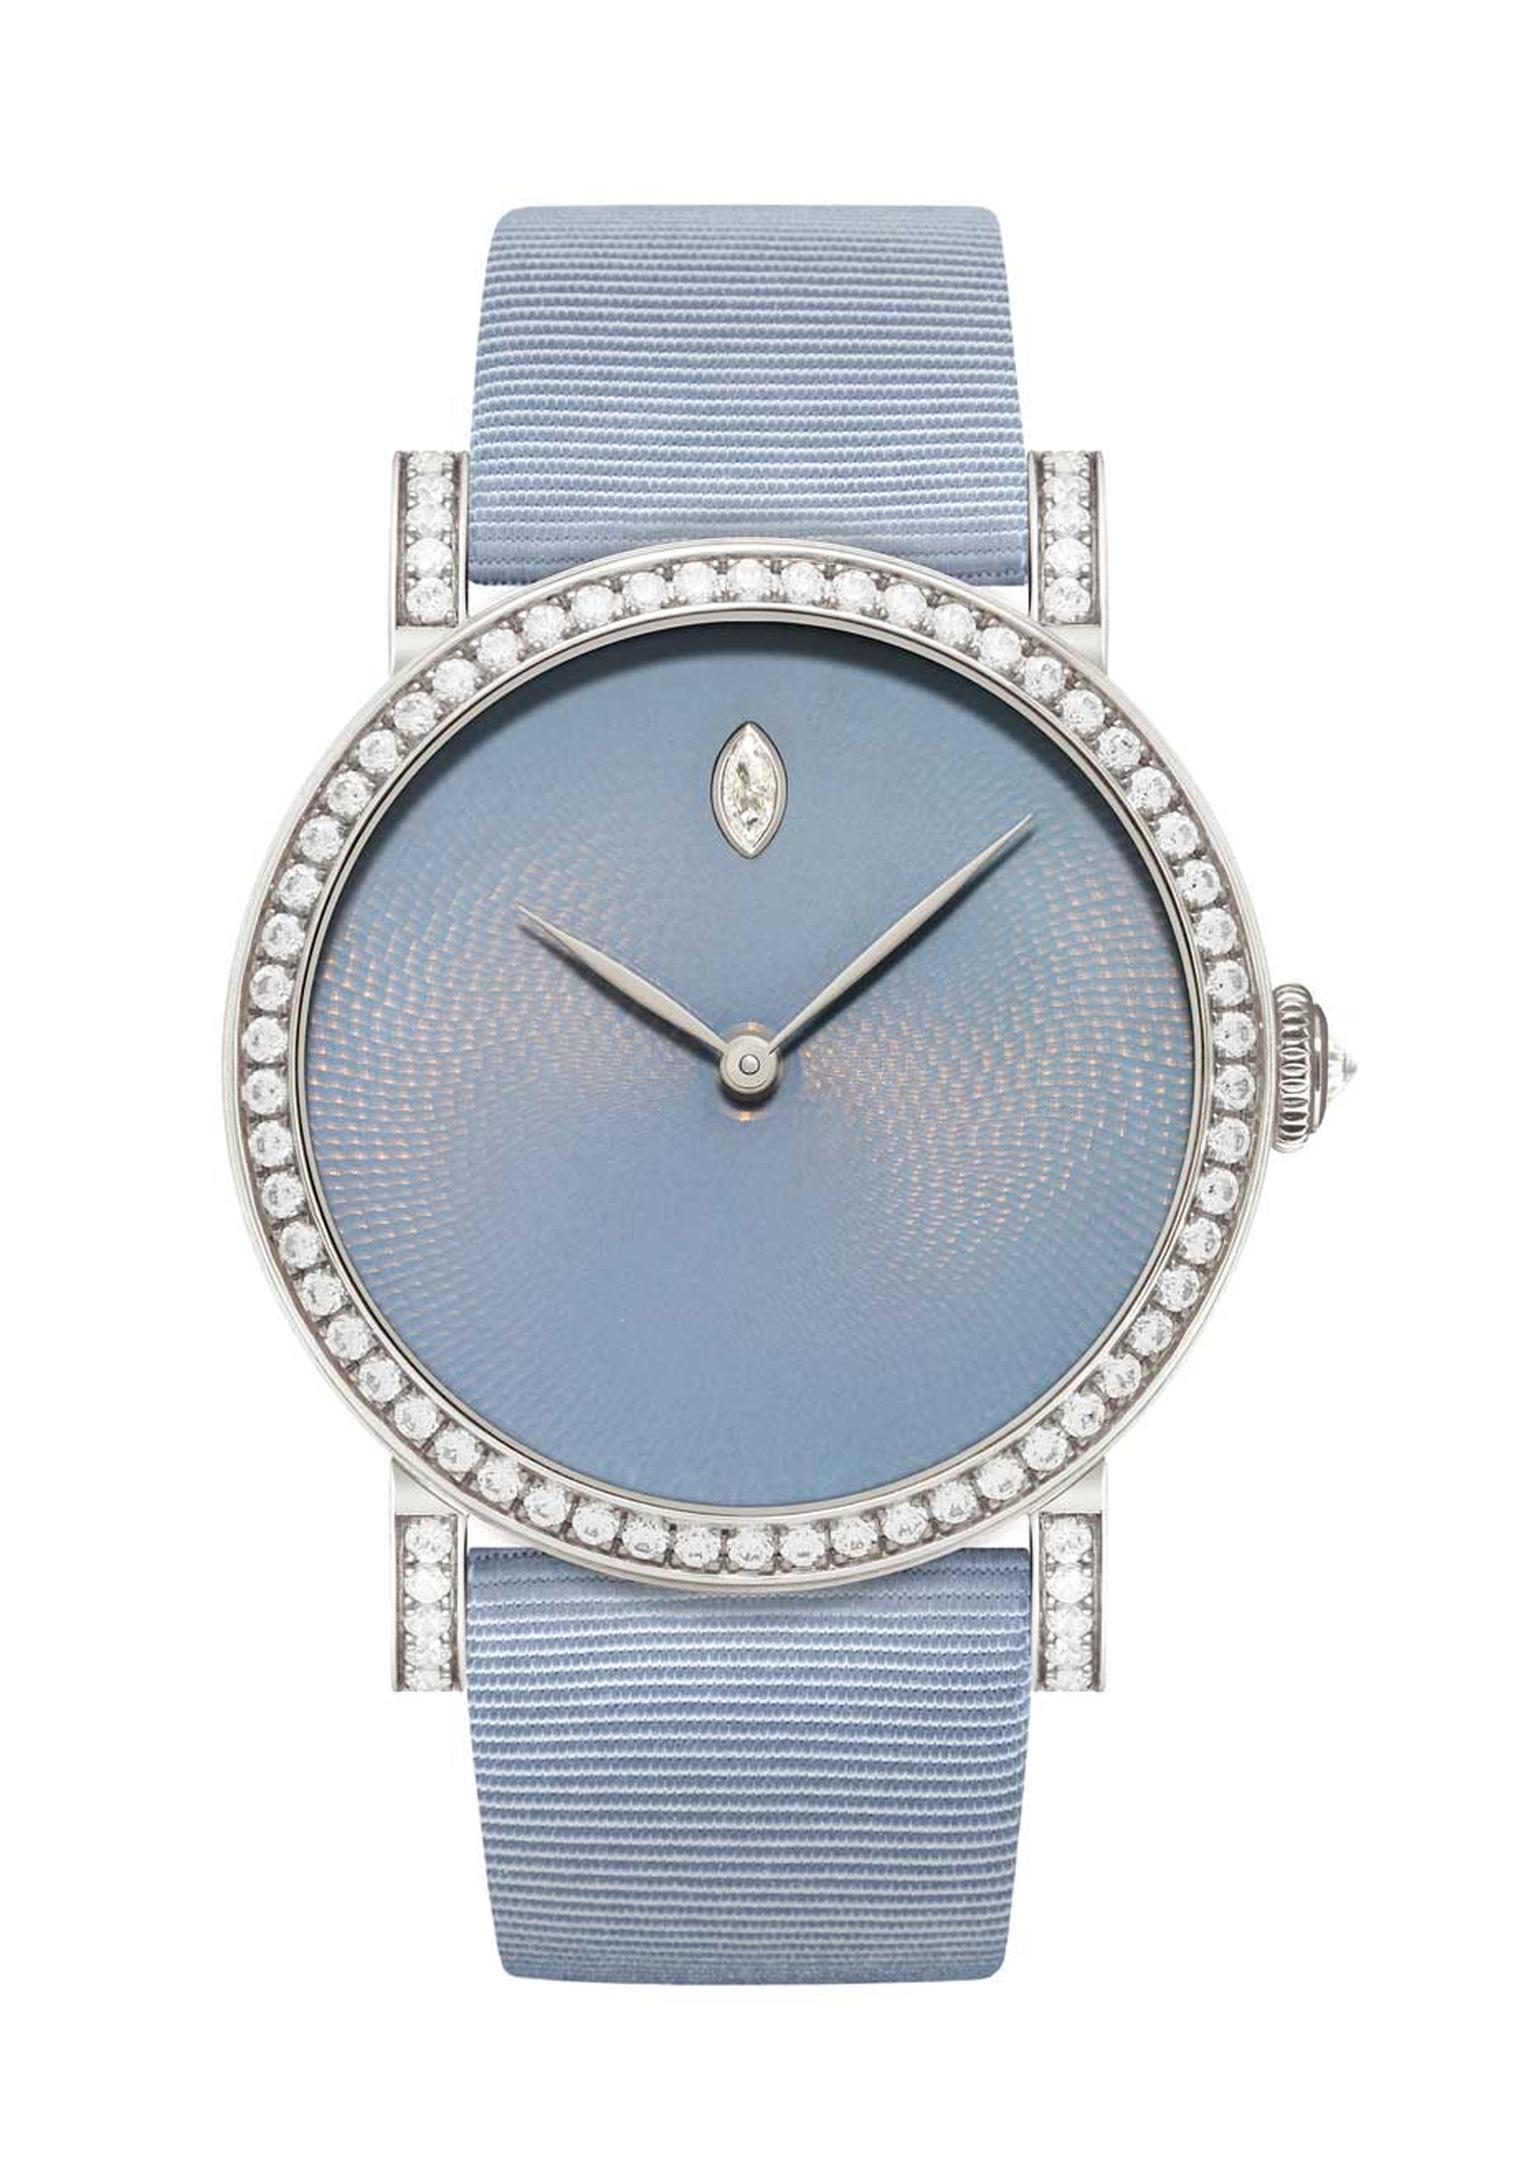 DeLaneau's Rondo Translucent Hoar Frost watch, with a diamond-set bezel. The colour of the guilloché enamel dial is as mysterious as a grayish violet winter morning